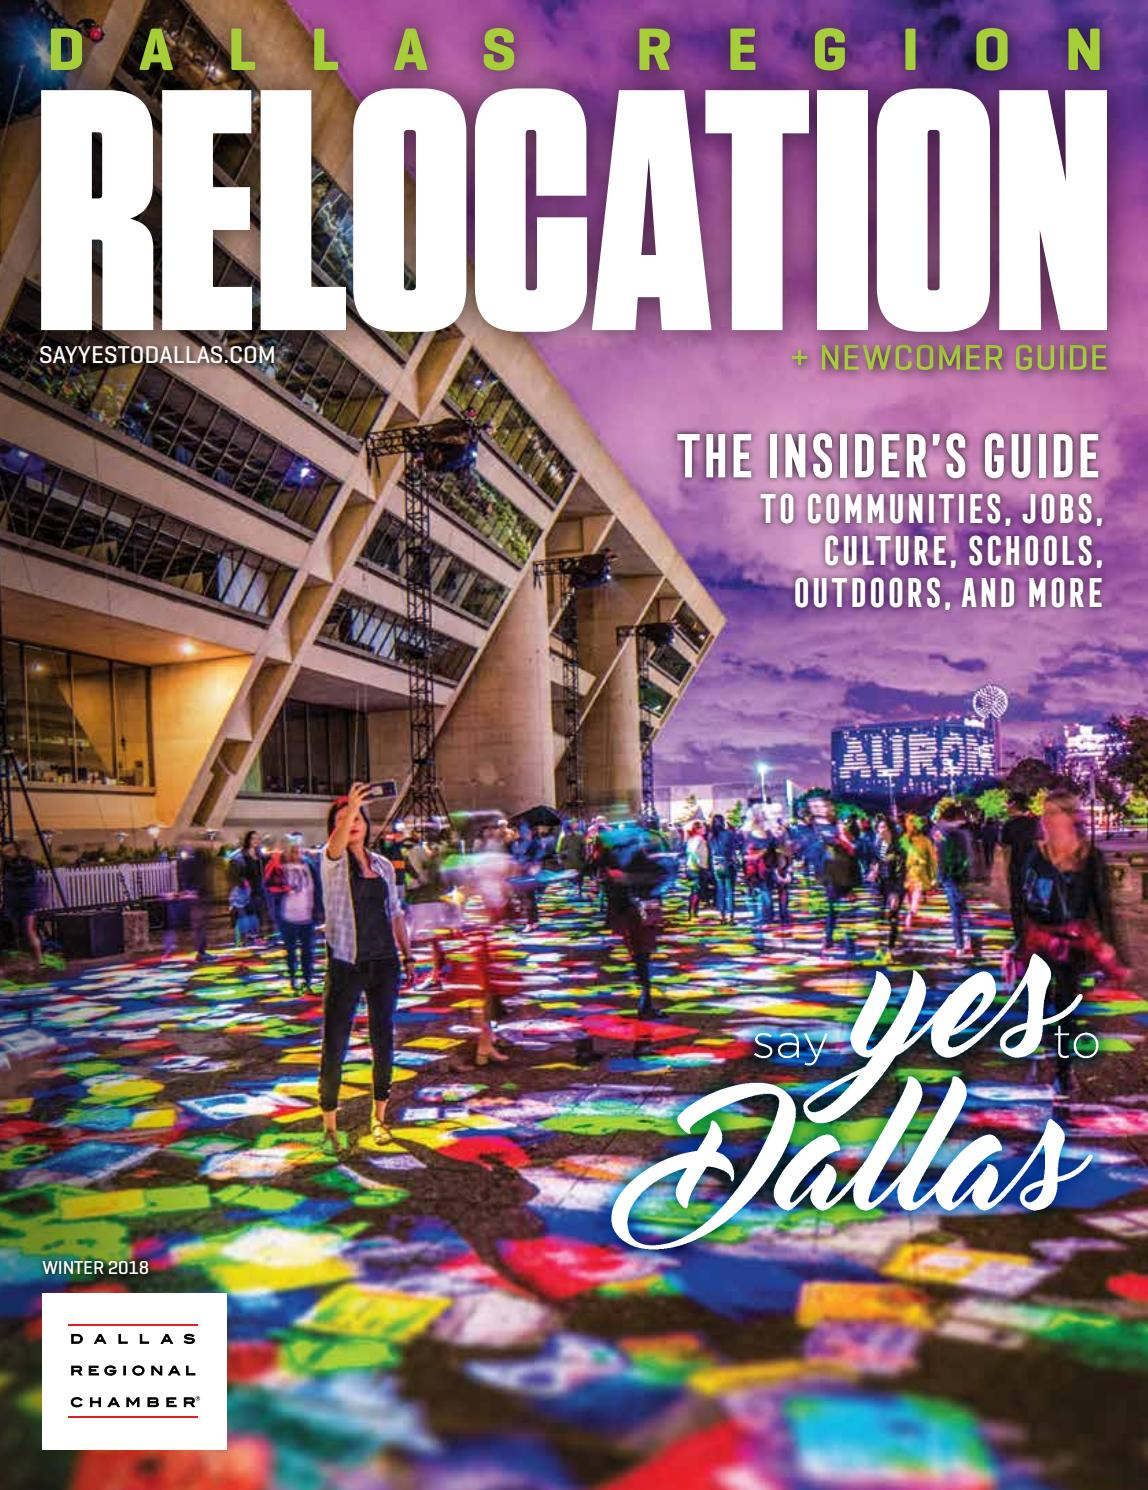 c22a5fe40600a Dallas Region Relocation + Newcomer Guide - Winter 2018 by Dallas Regional  Chamber Publications - issuu